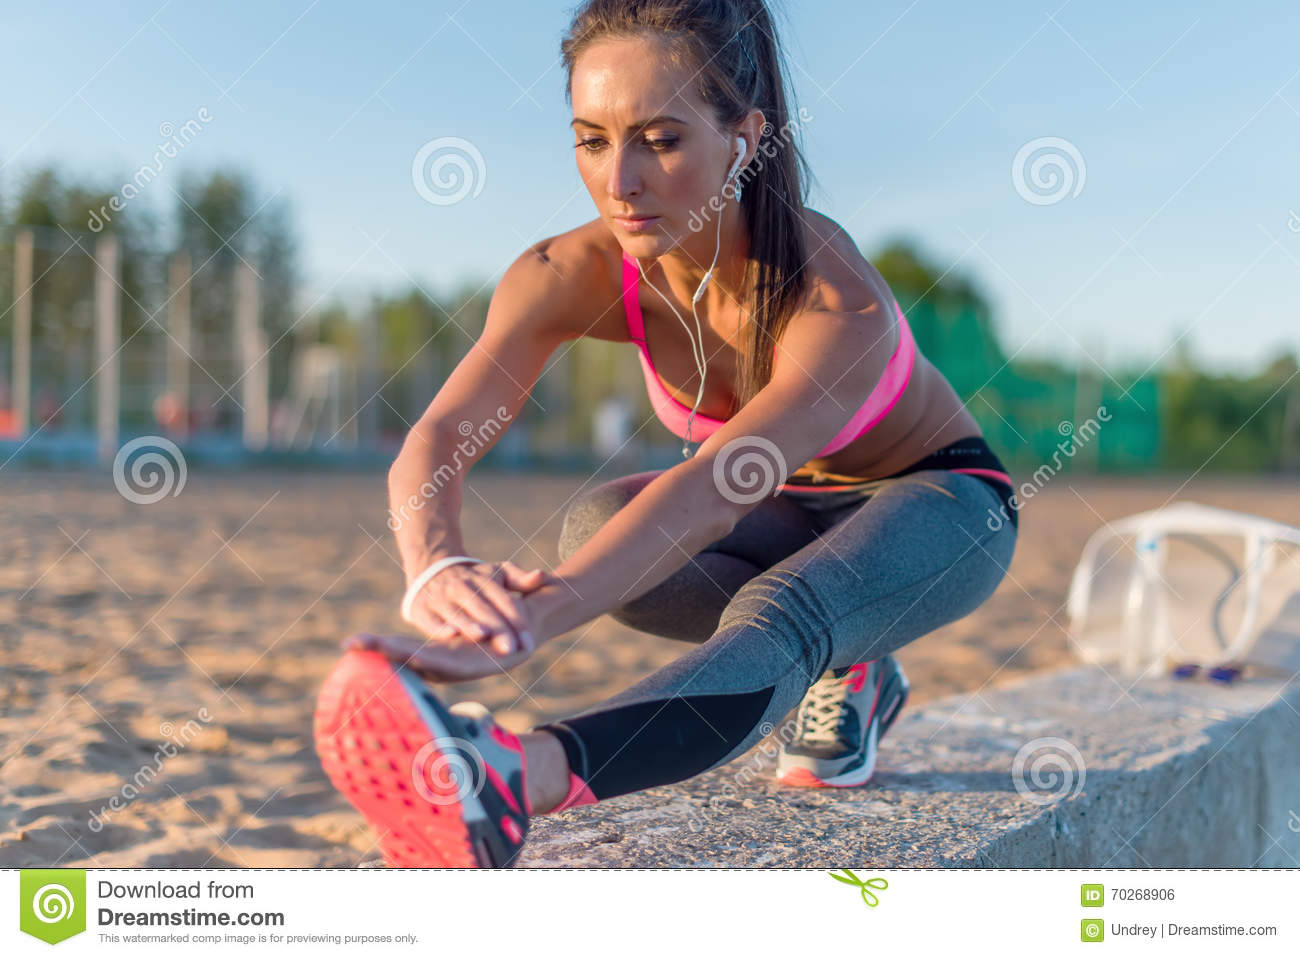 Fitness model athlete girl warm up stretching her hamstrings, leg and back. Young woman exercising with headphones